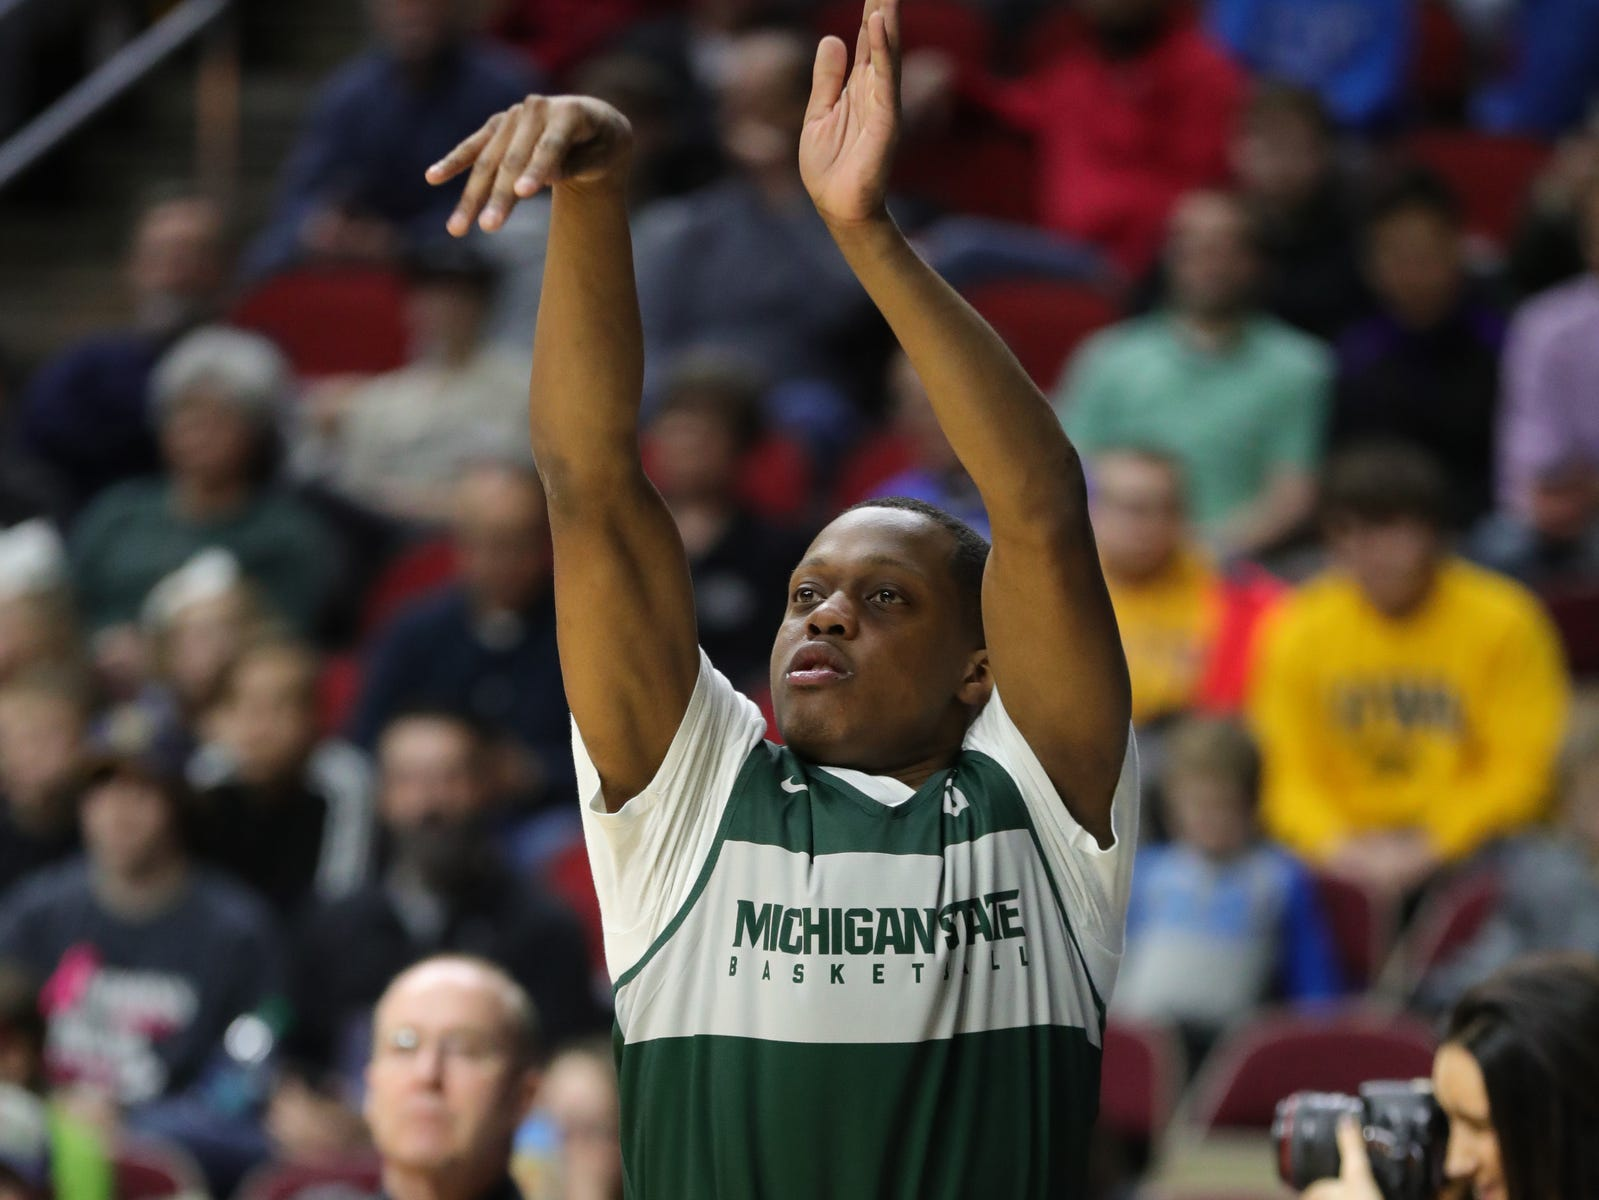 Michigan State guard Cassius Winston shoots jumpers as his team prepares for the first-round NCAA tournament game against Michigan State on Wednesday, March 20, 2019 at Wells Fargo Arena in Des Moines, Iowa.